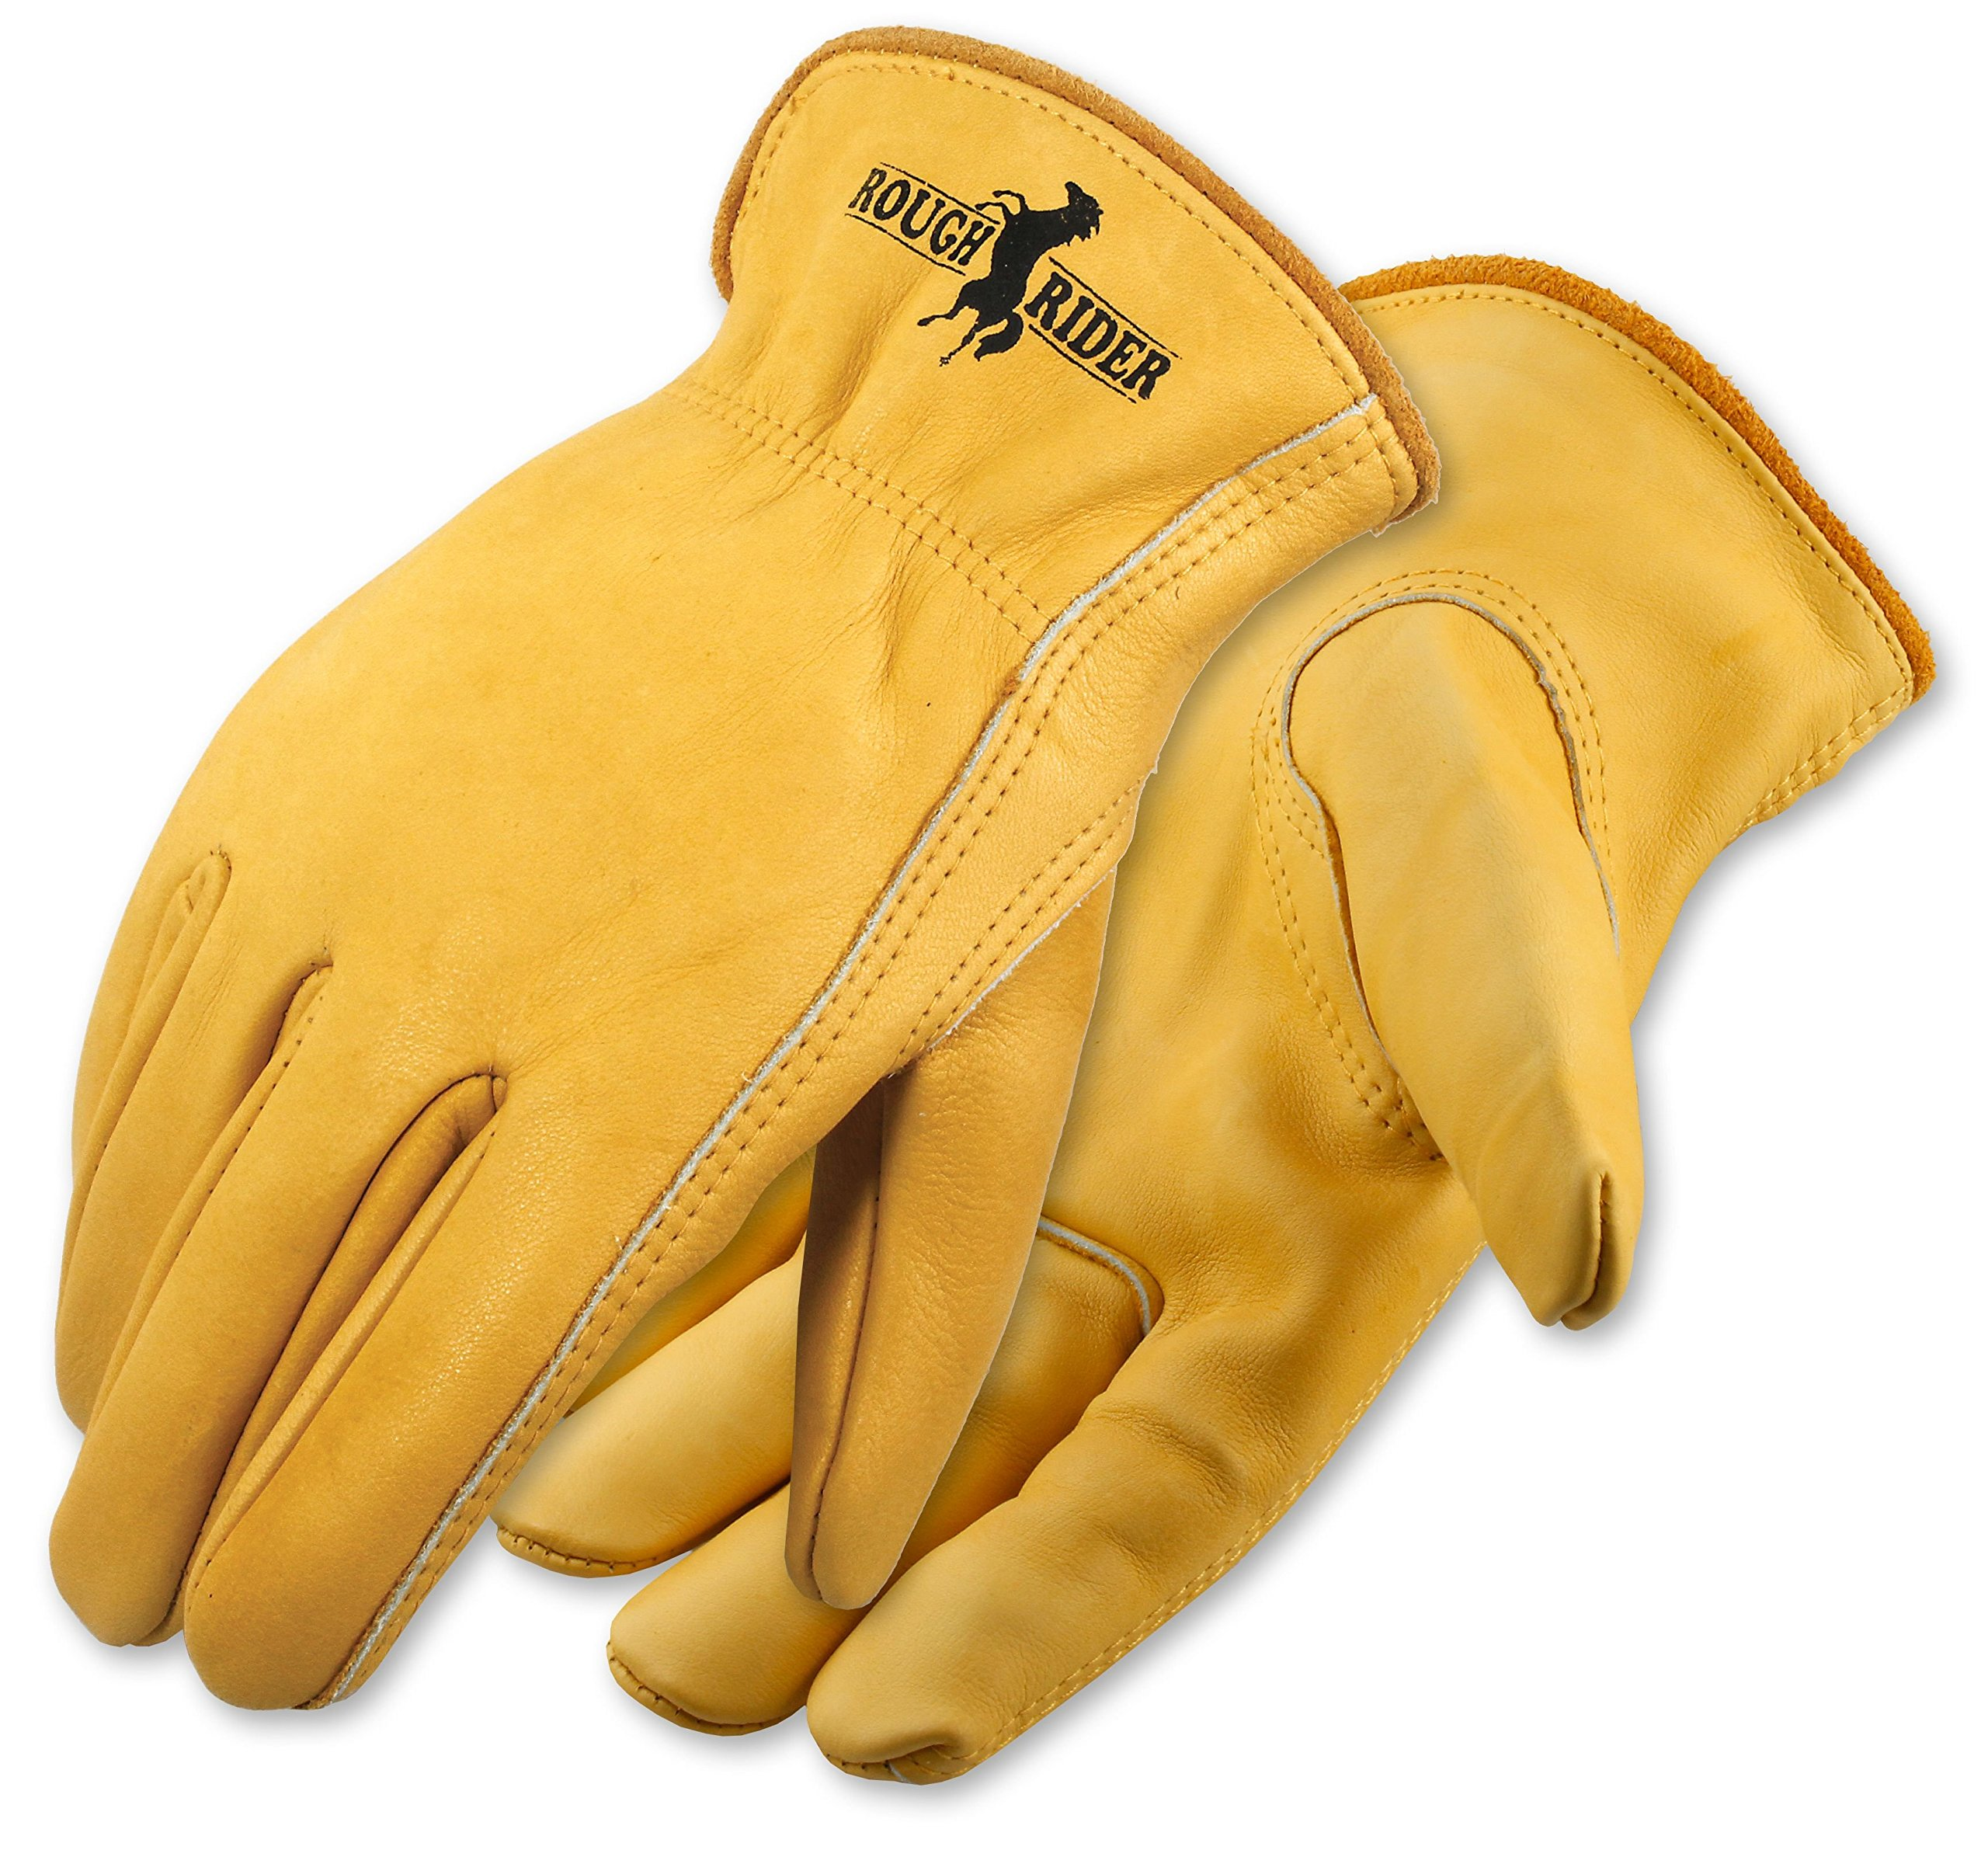 Galeton 2500-XL Elastic Back Rough Rider Premium Leather Gloves (Pack of 12), X-Large, Gold